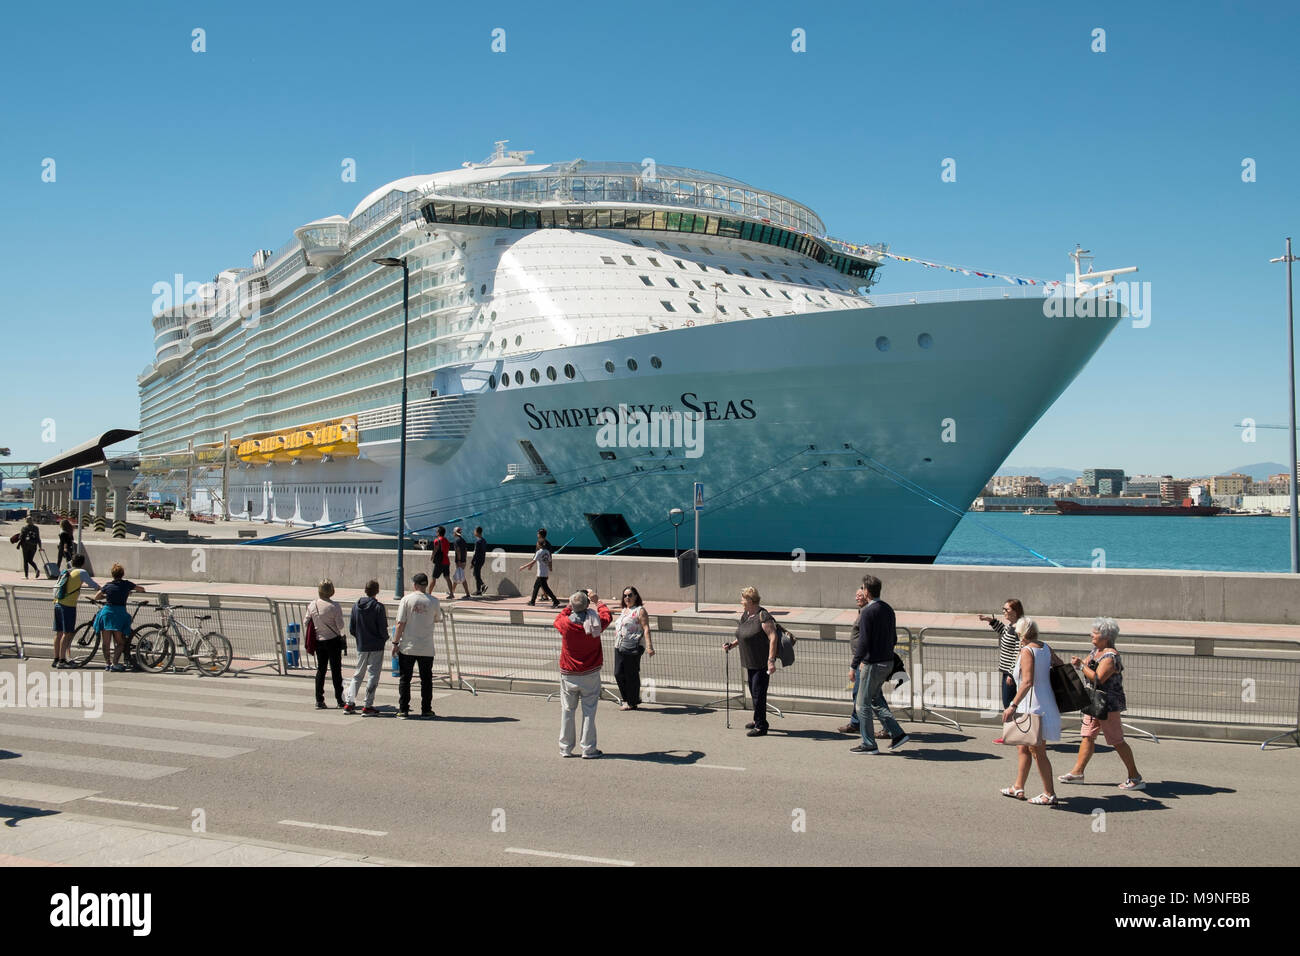 March 27 2018 Malaga Spain International Presentation Of The Cruise Ship Symphony Of The